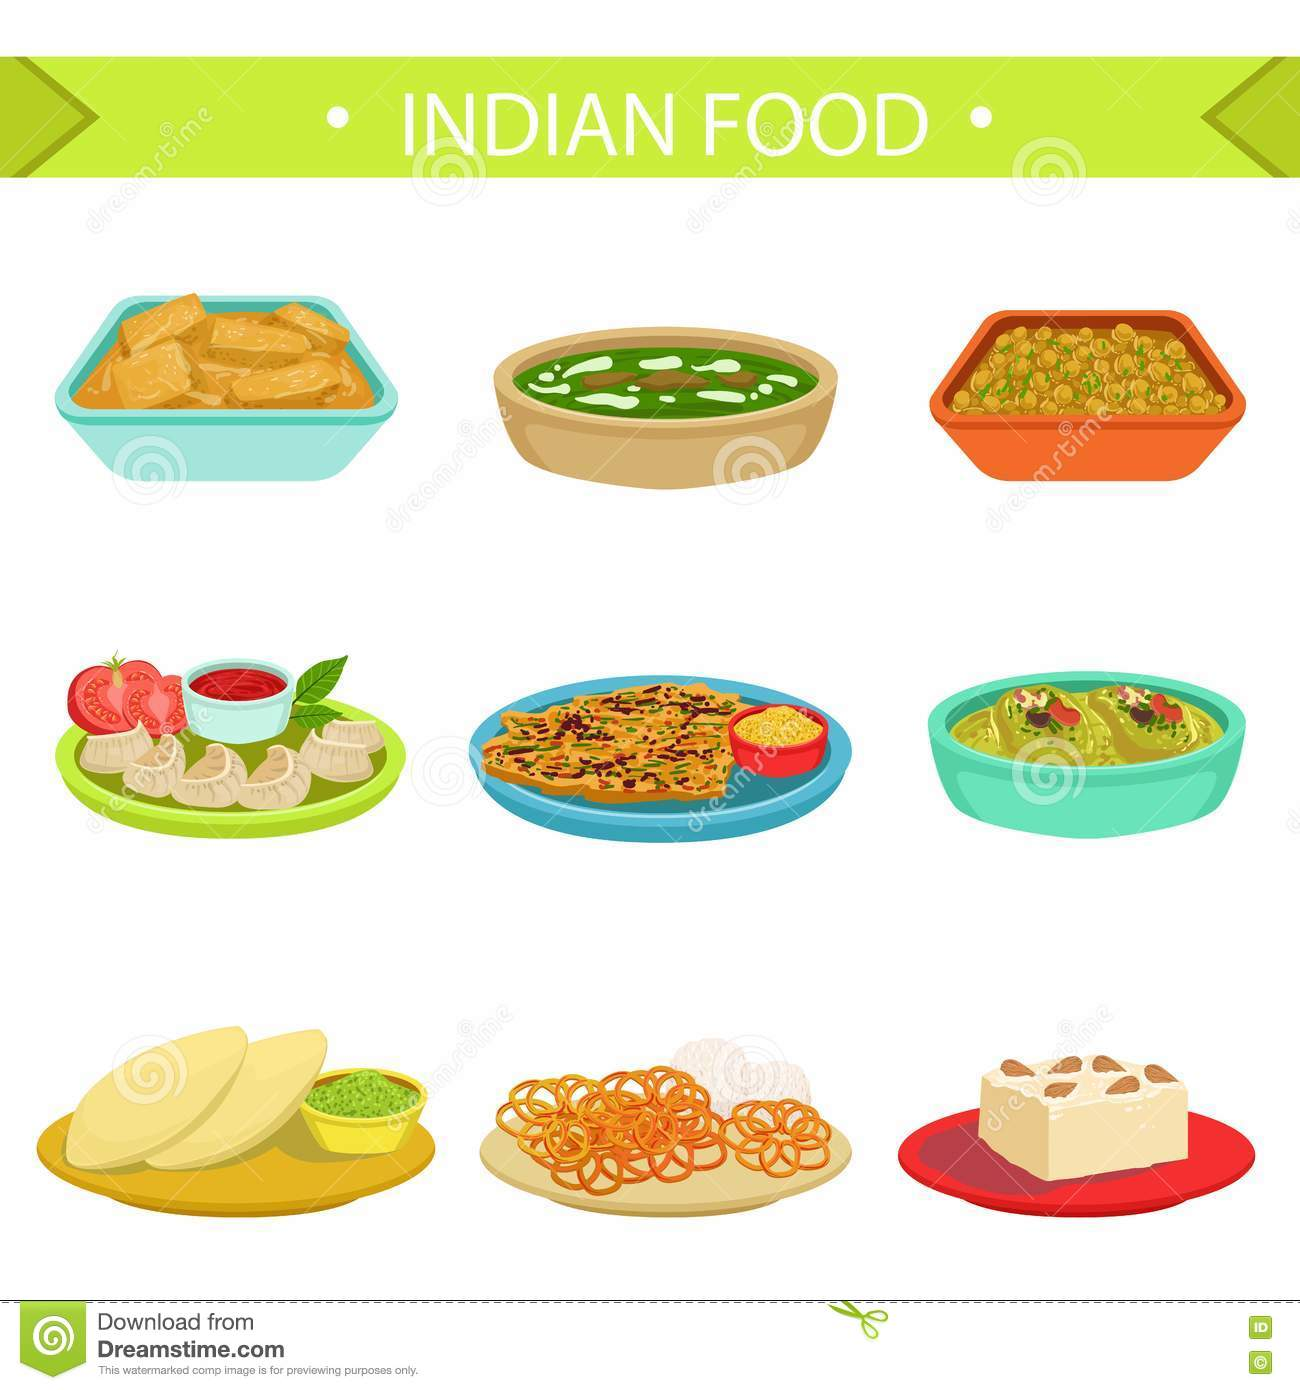 Indian Food Famous Dishes Illustration Set Stock Vector ...